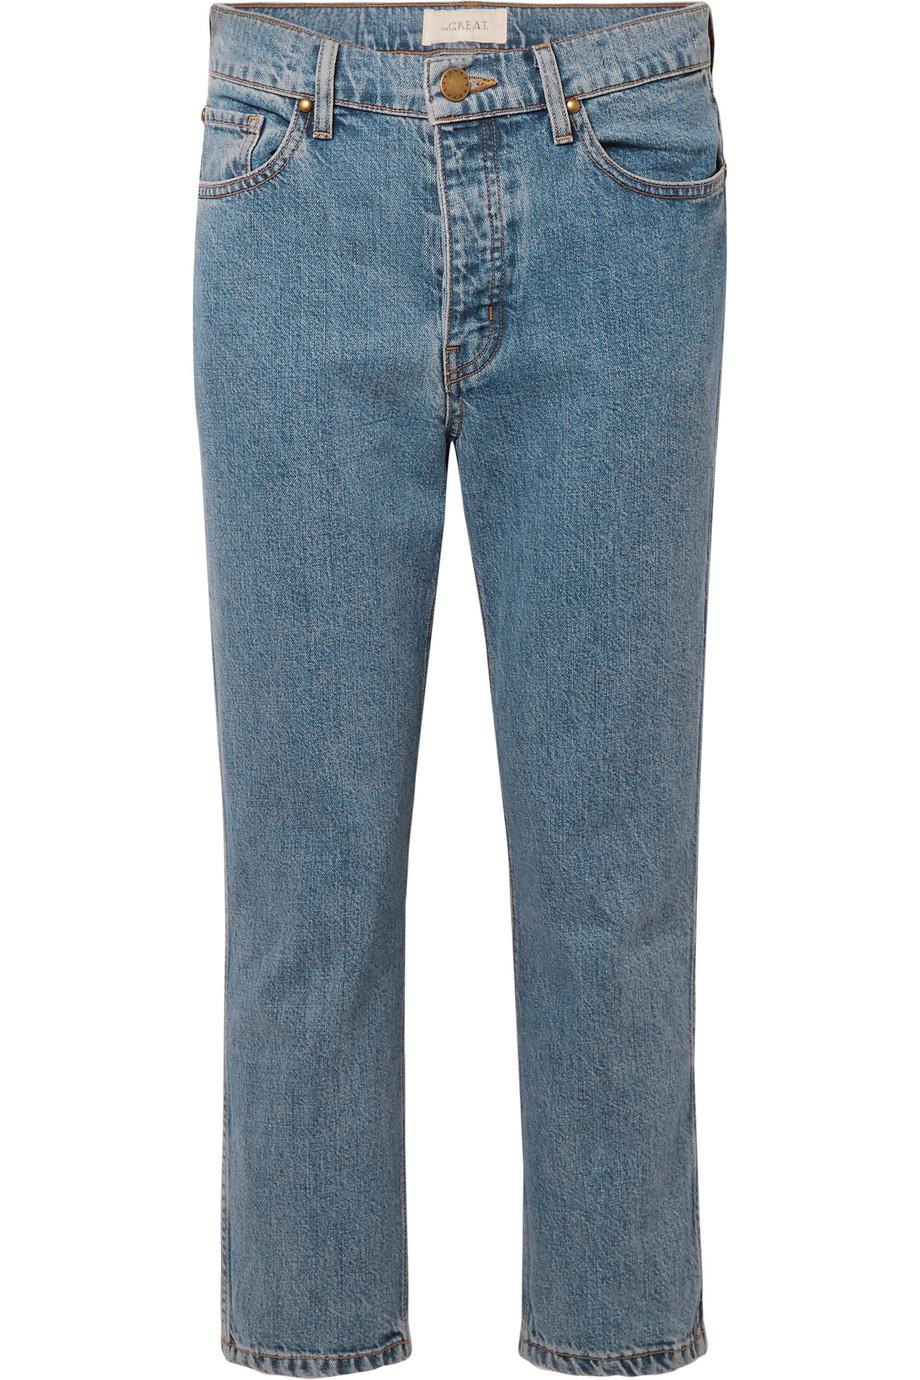 The Rigid Fellow Cropped High-rise Straight-leg Jeans - Mid denim The Great. TLLcYt27y